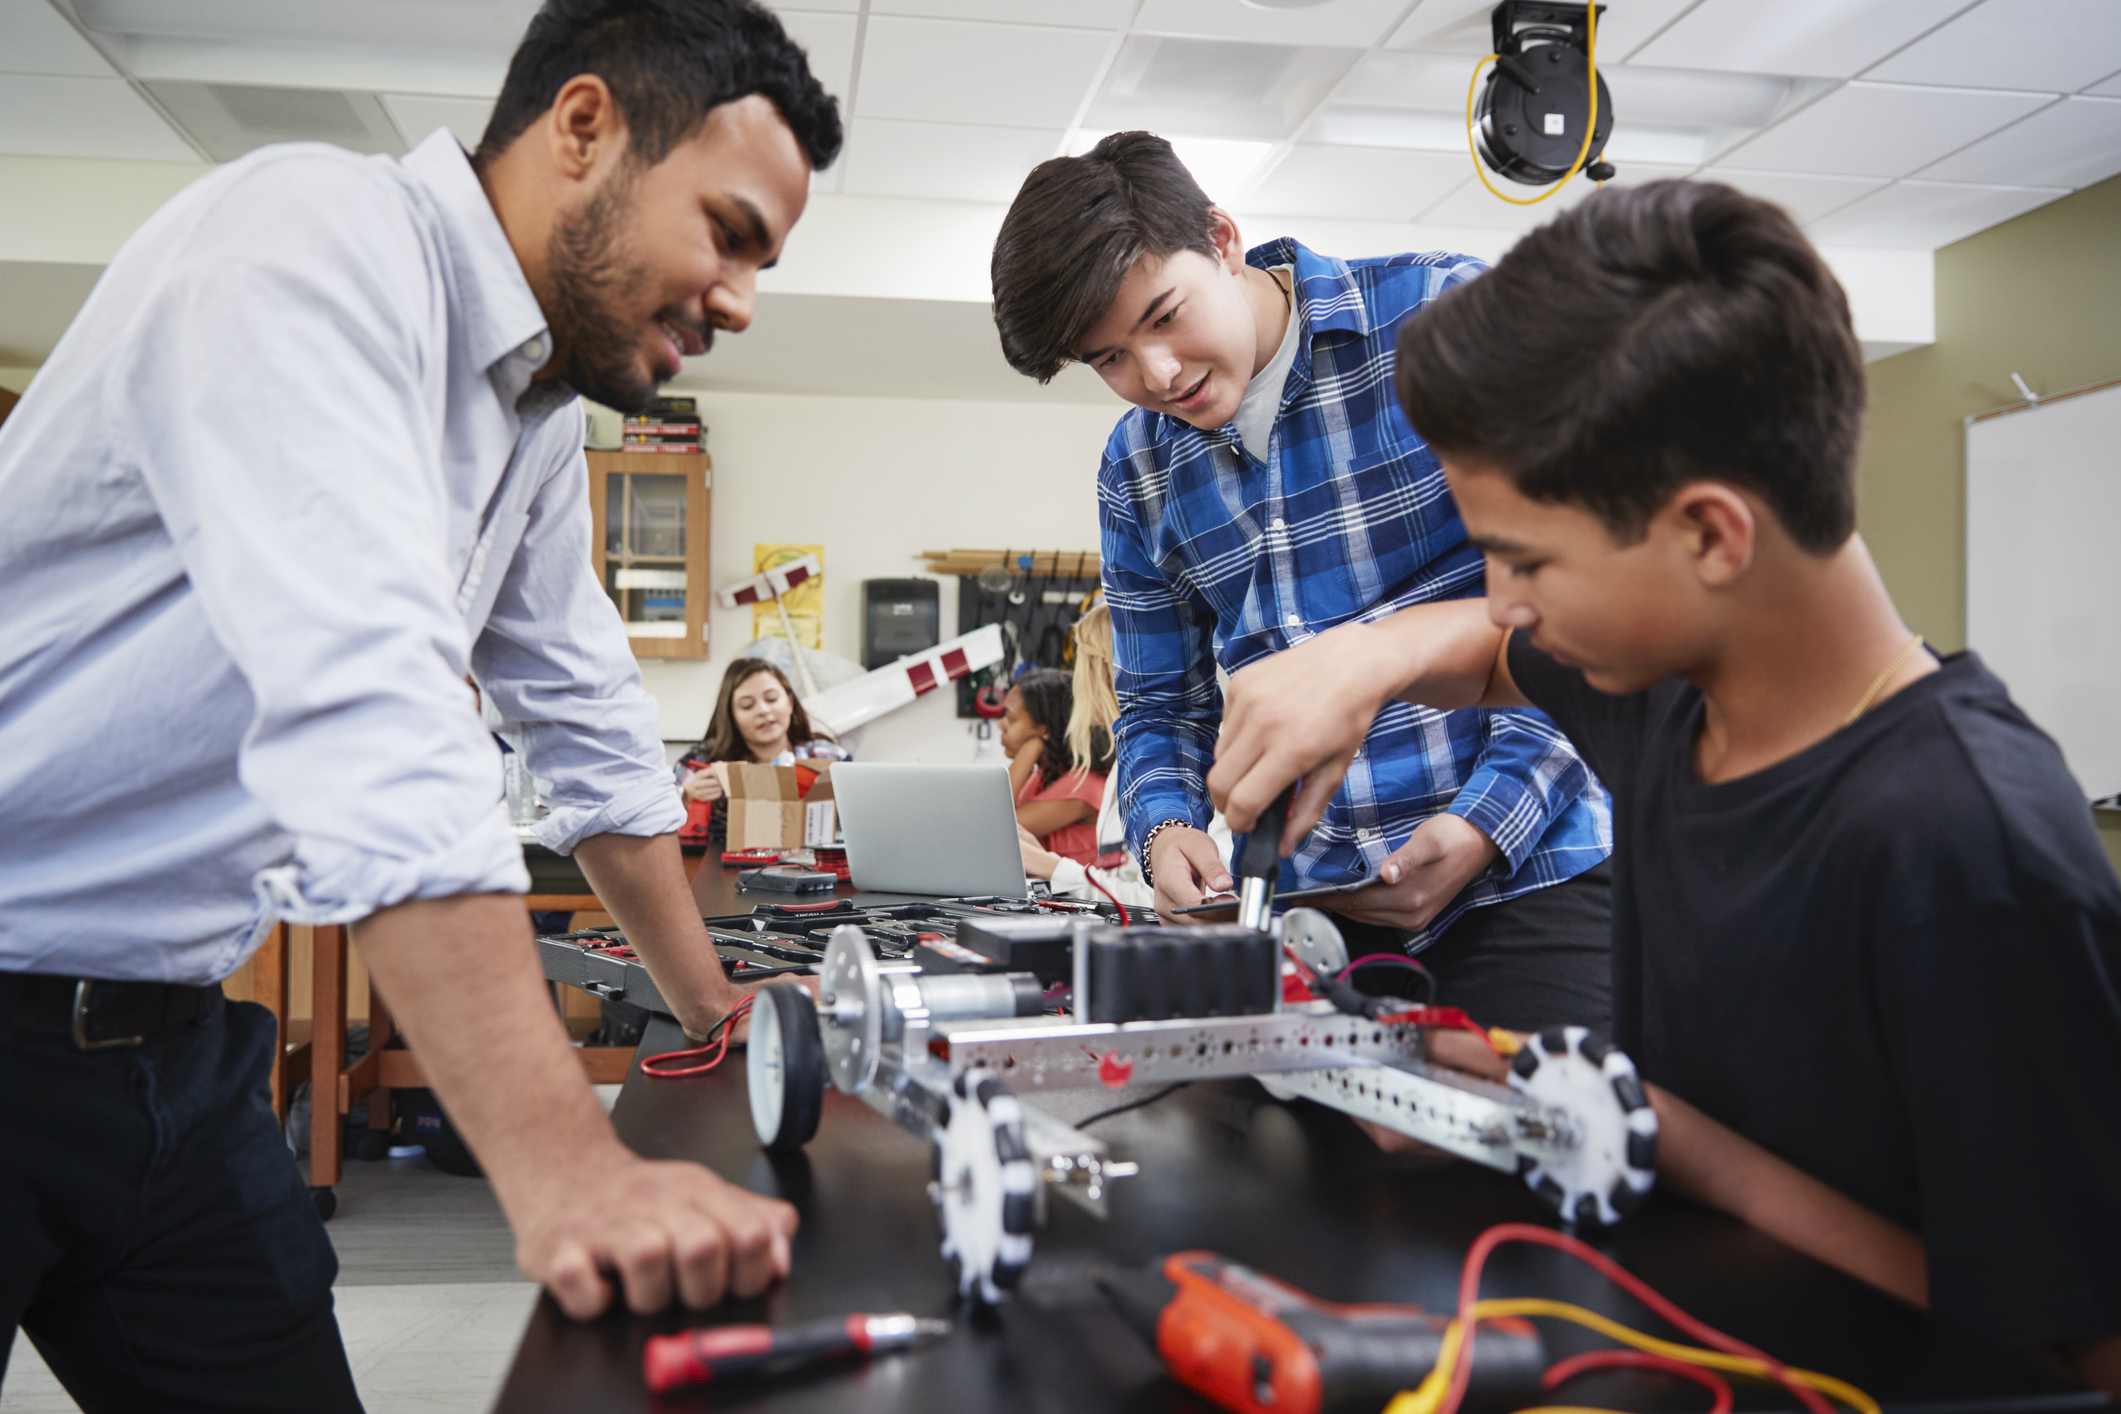 Teacher builds robot with students.